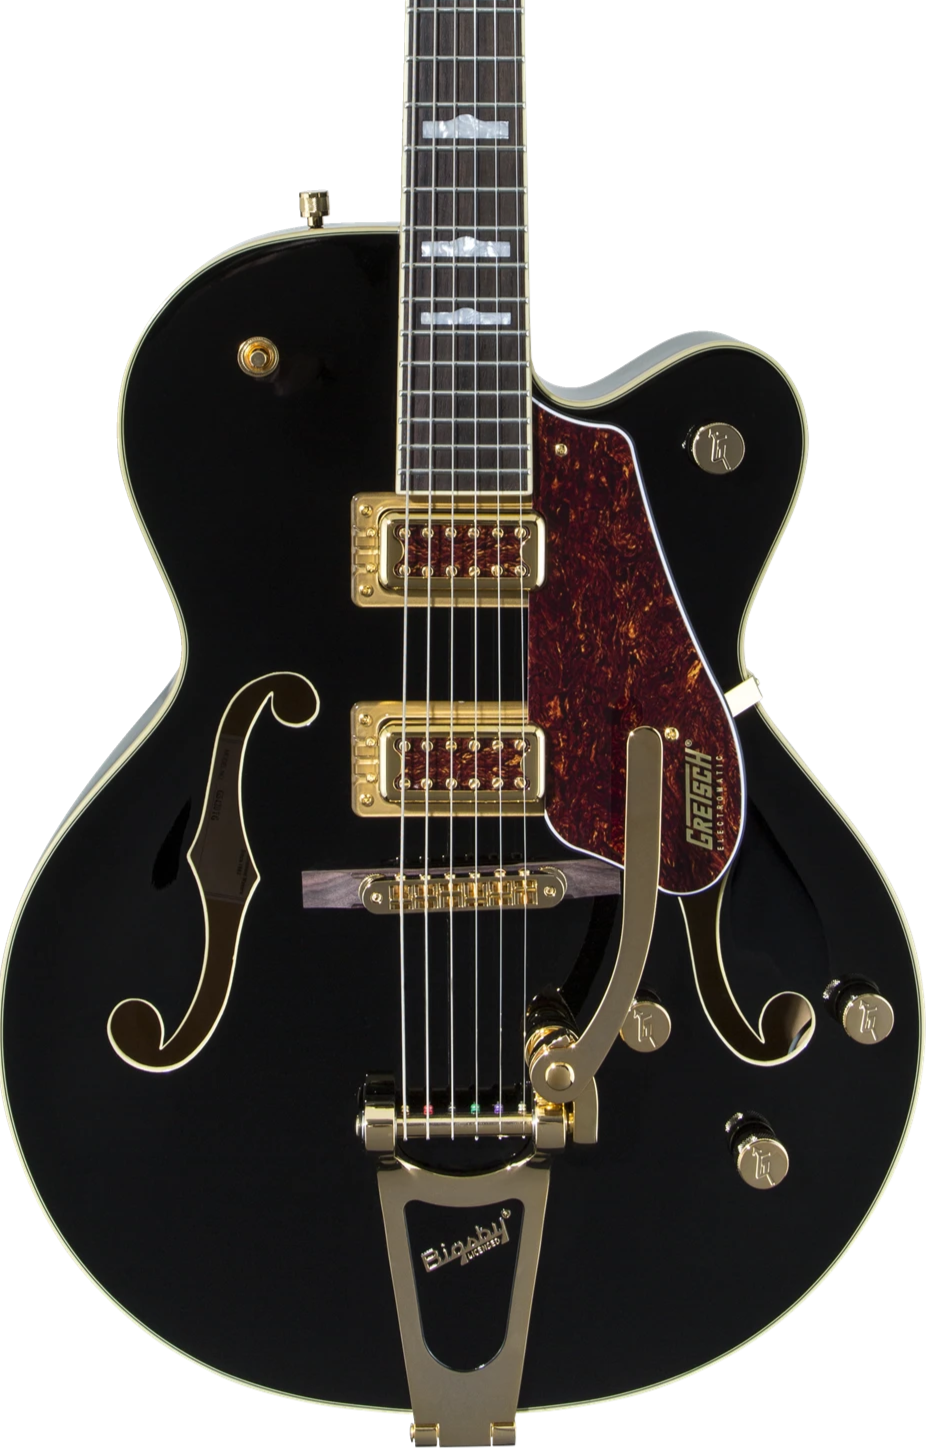 GRETSCH G5420TG LIMITED EDITION ELECTROMATIC 50'S HOLLOWBODY BLACK